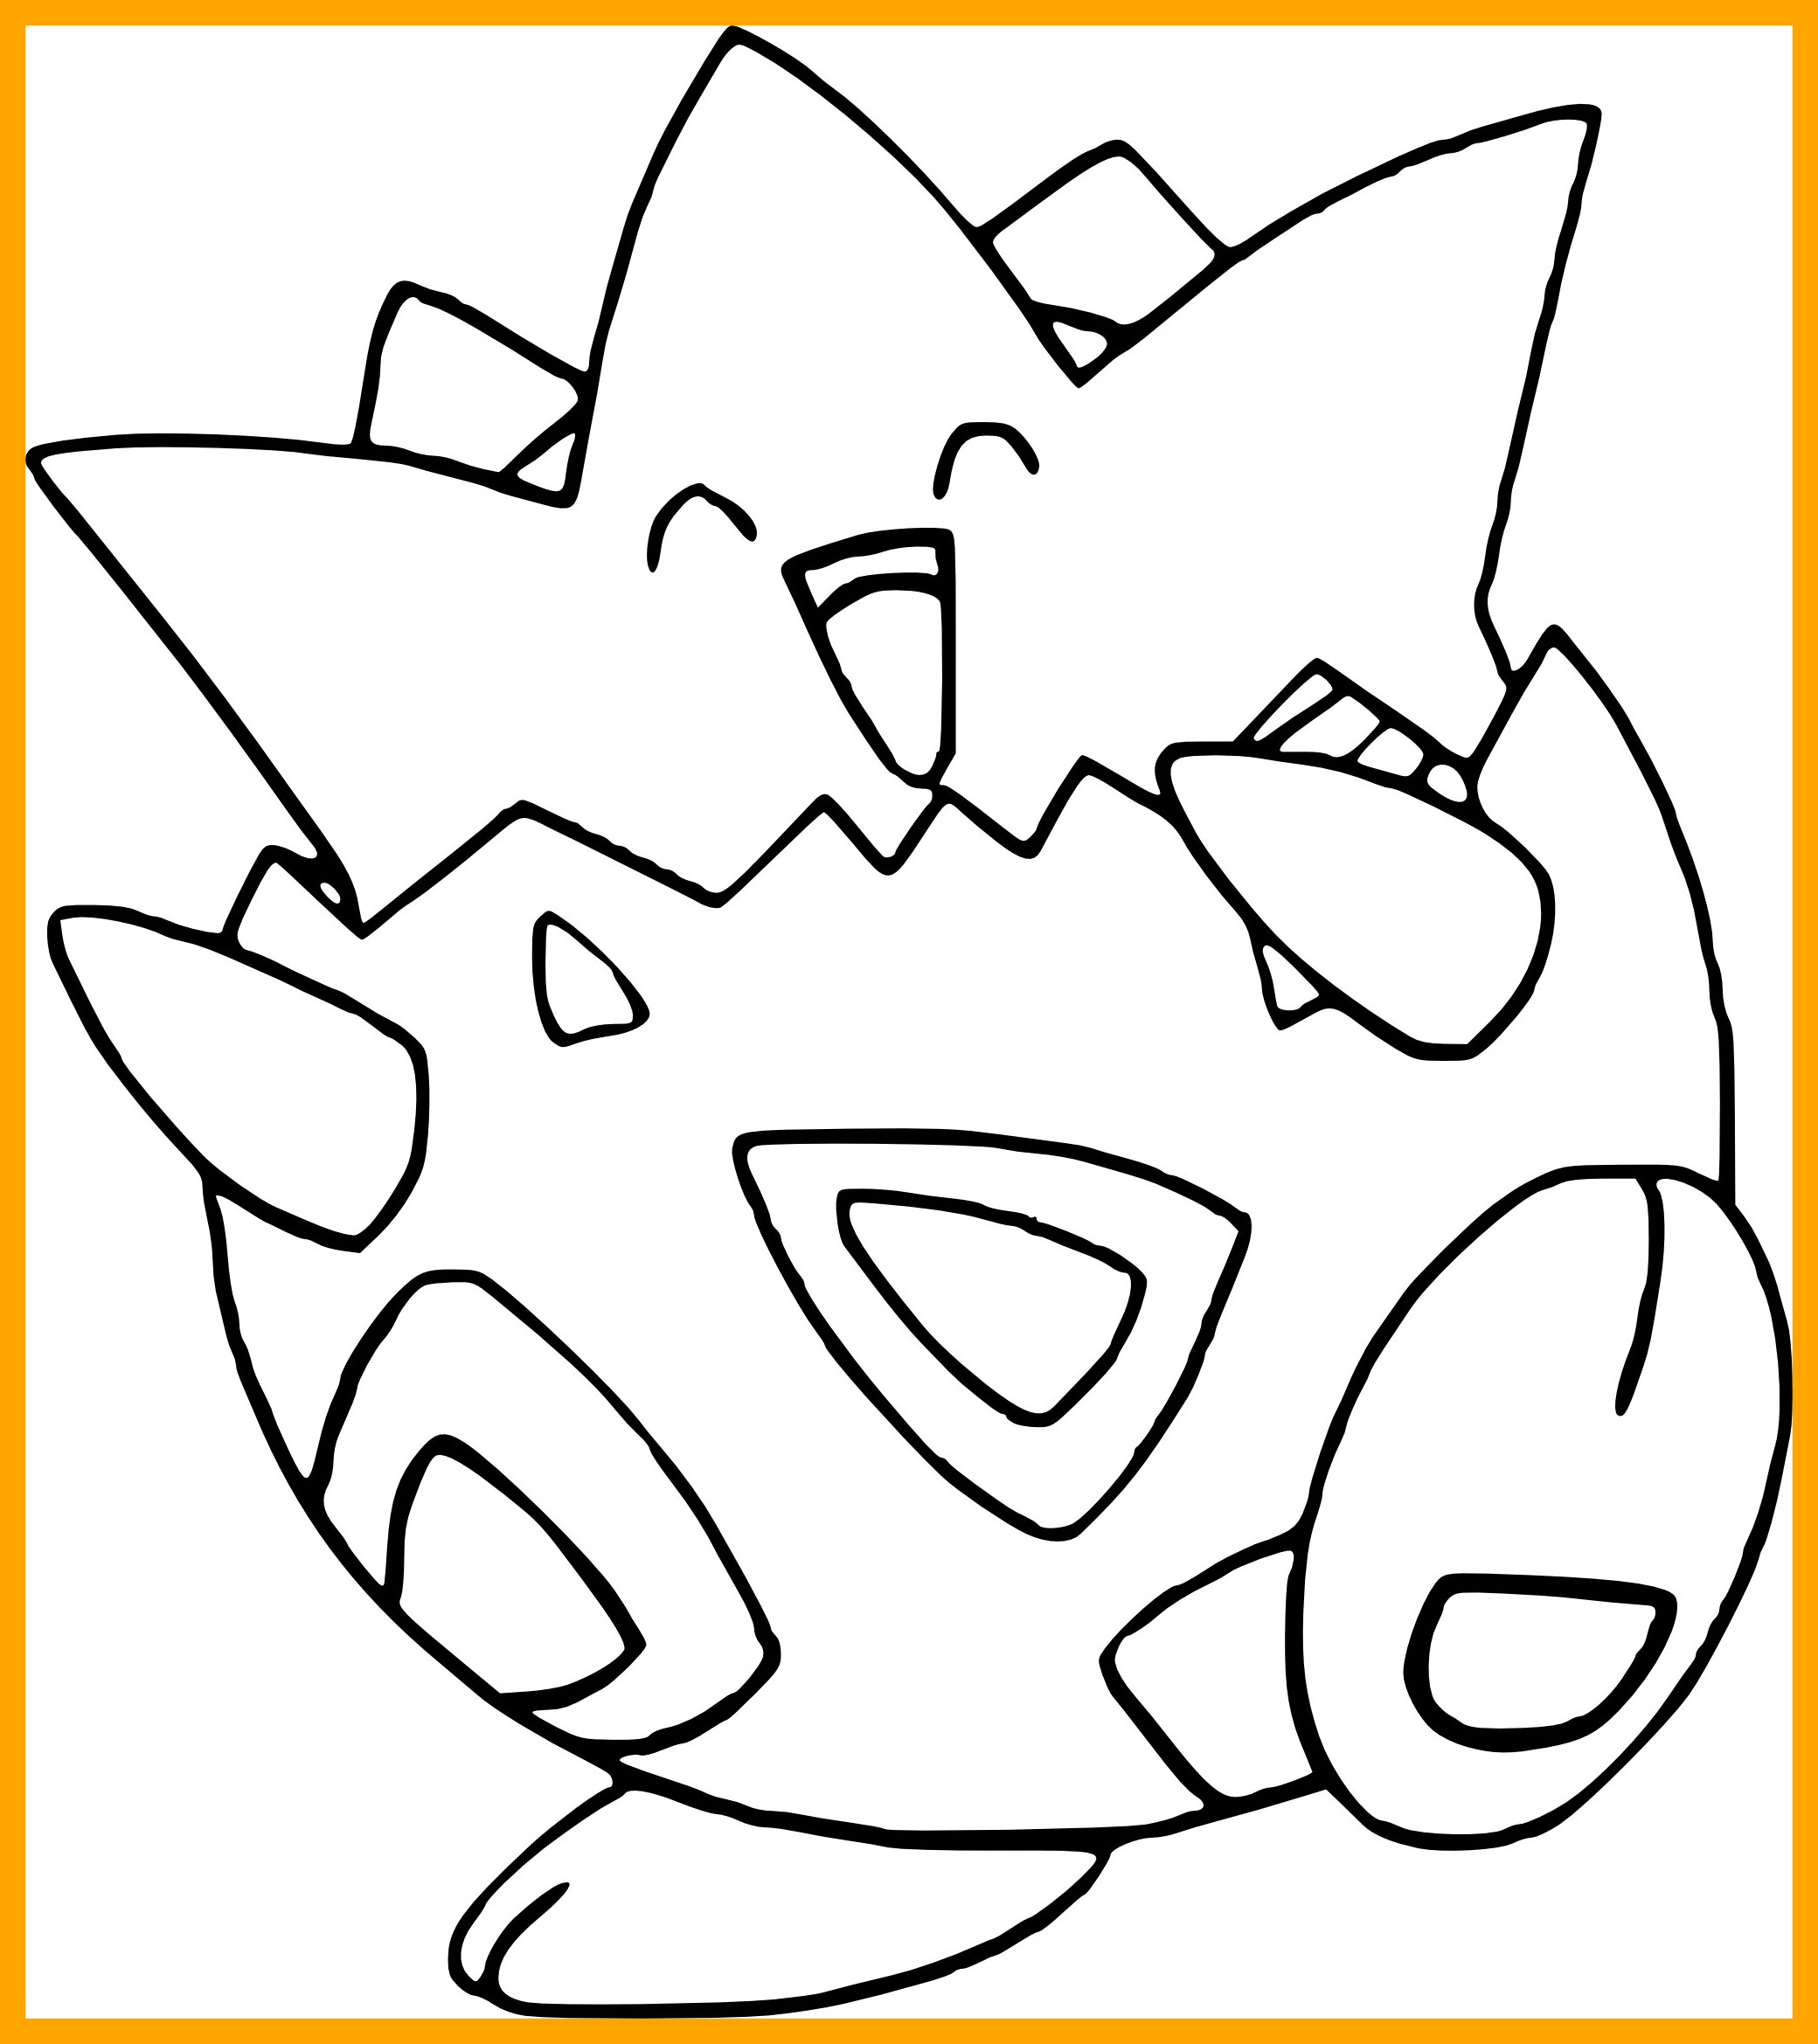 2080x2339 Inspiring Pokemon Coloring Pages For Togepi Styles And Popular